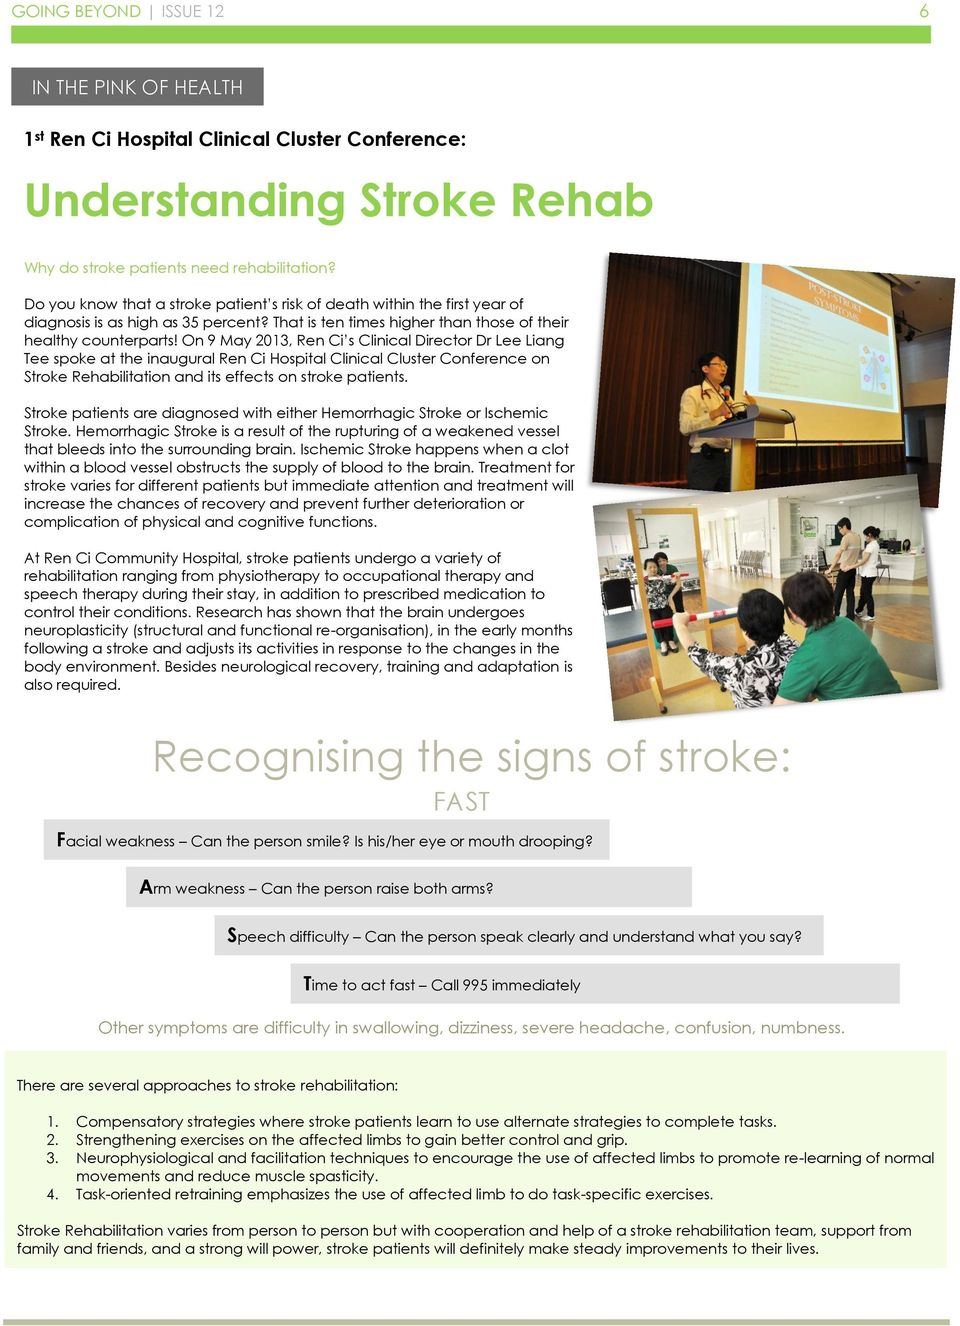 On 9 May 2013, Ren Ci s Clinical Director Dr Lee Liang Tee spoke at the inaugural Ren Ci Hospital Clinical Cluster Conference on Stroke Rehabilitation and its effects on stroke patients.